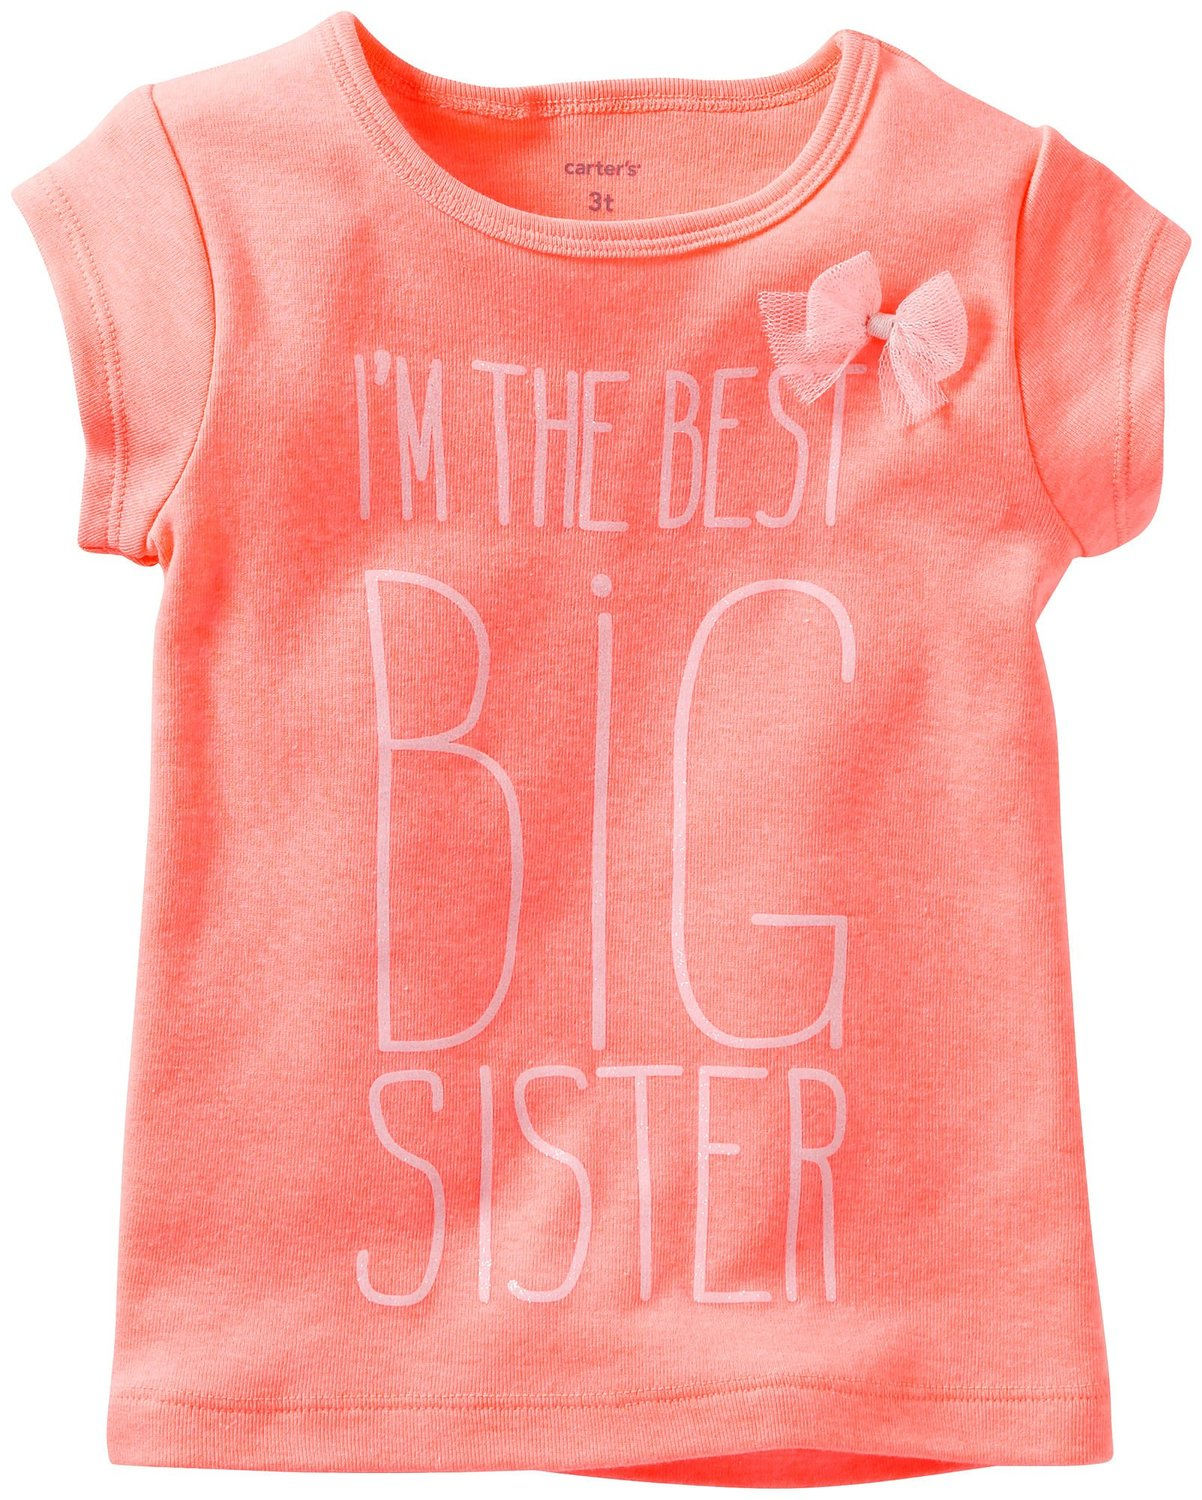 Inktastic The Big Sister Toddler T-Shirt Sis Older Sibling Tees. Gift Child Kid. Sold by Inktastic. $ - $ $ - $ Inktastic I Have Been Promoted To Big Sister Toddler T-Shirt Children Bigsis Sis. Sold by Inktastic. $ $